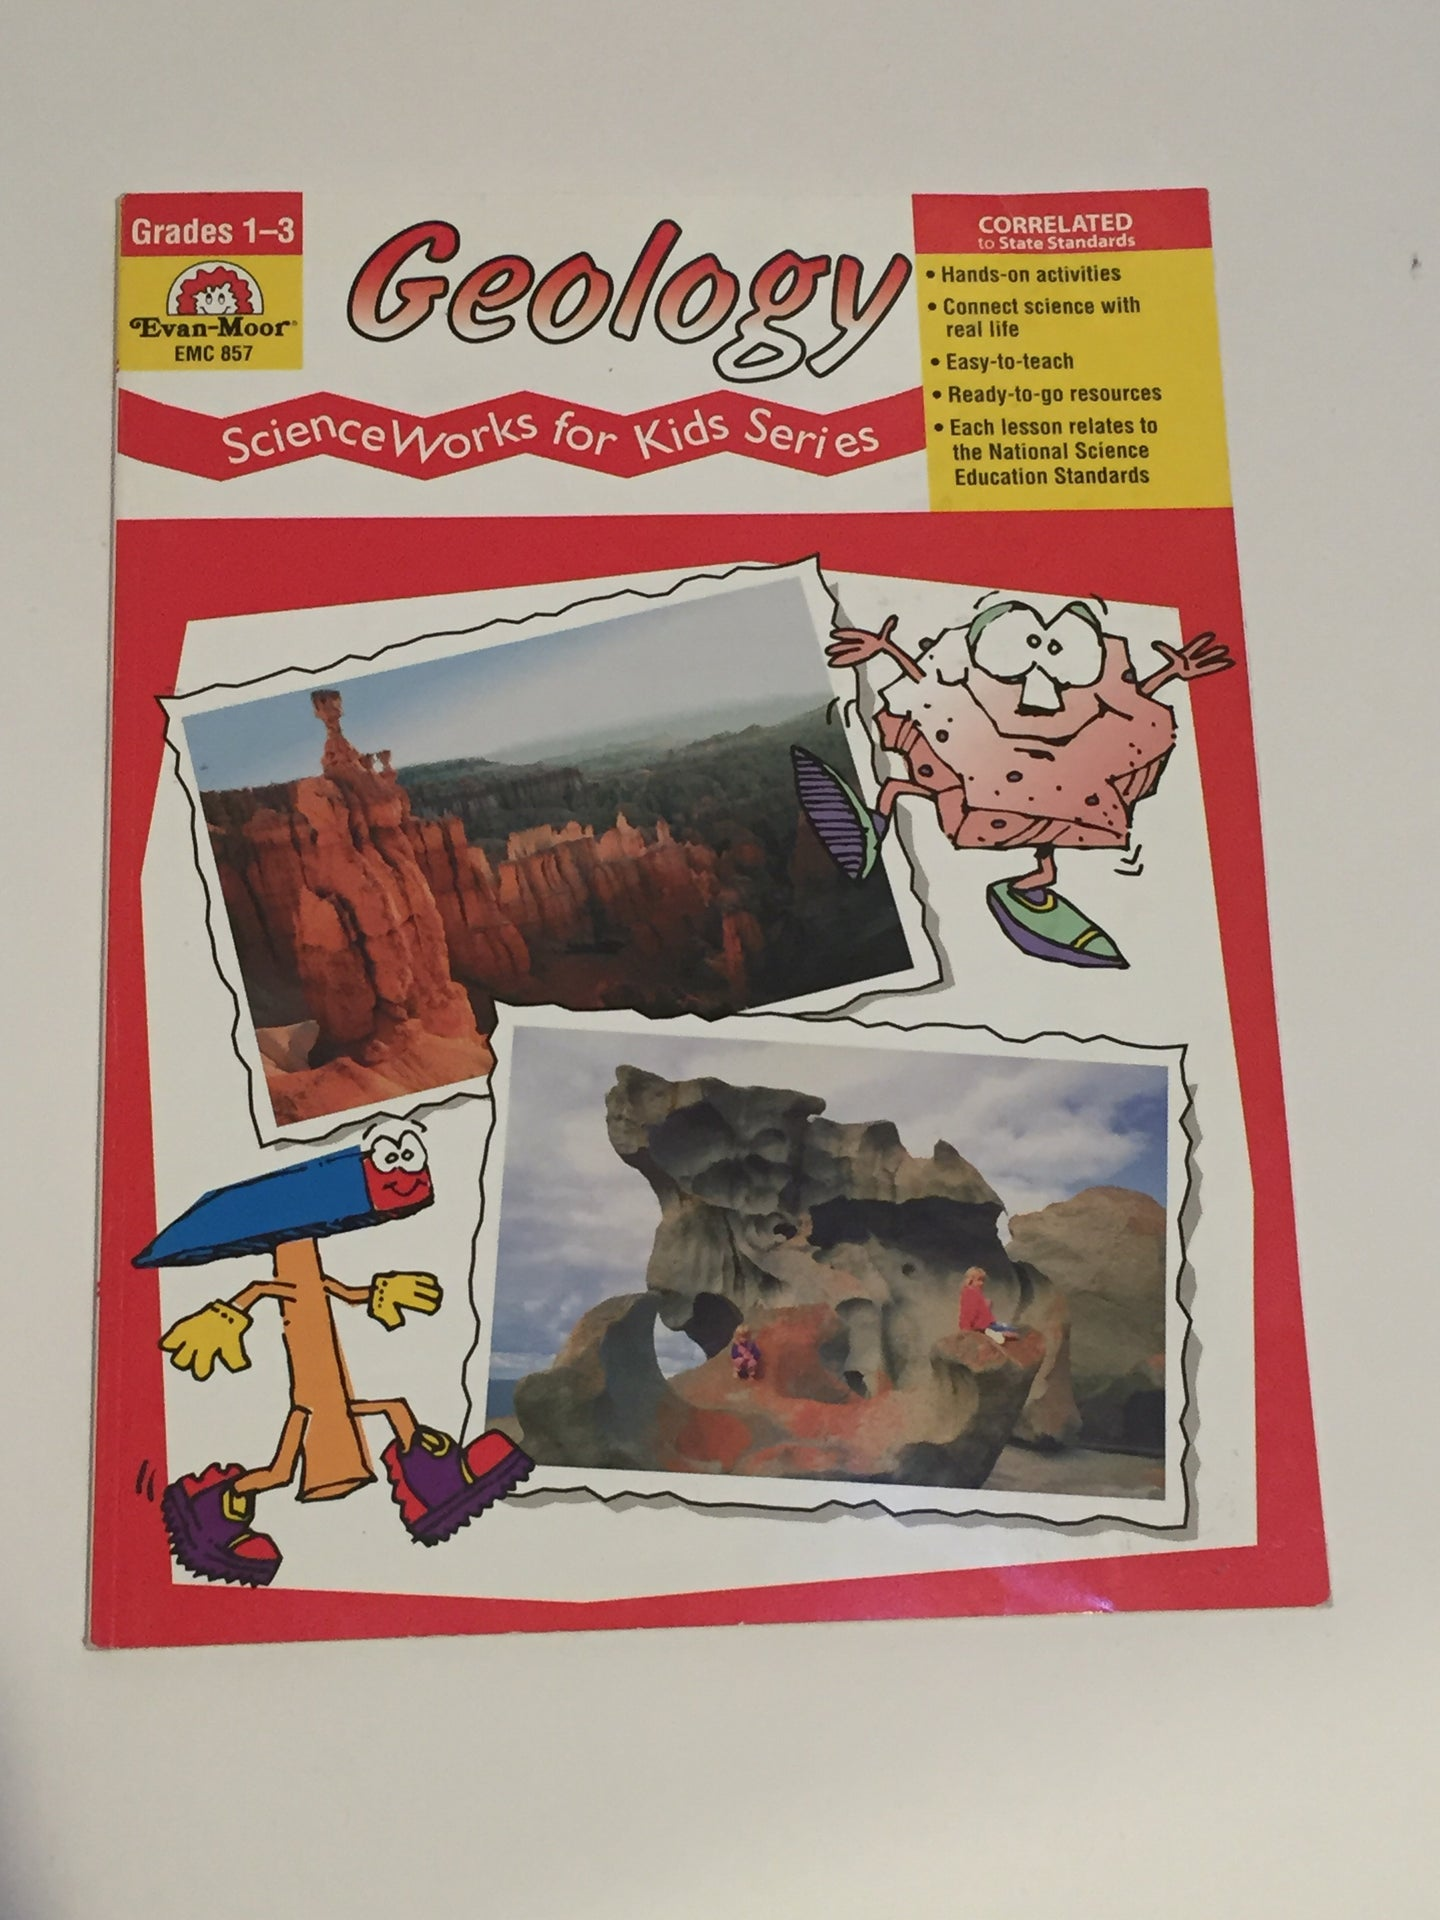 Geology, Science Works for Kids Series (Used- Like New) - Little Green Schoolhouse Books